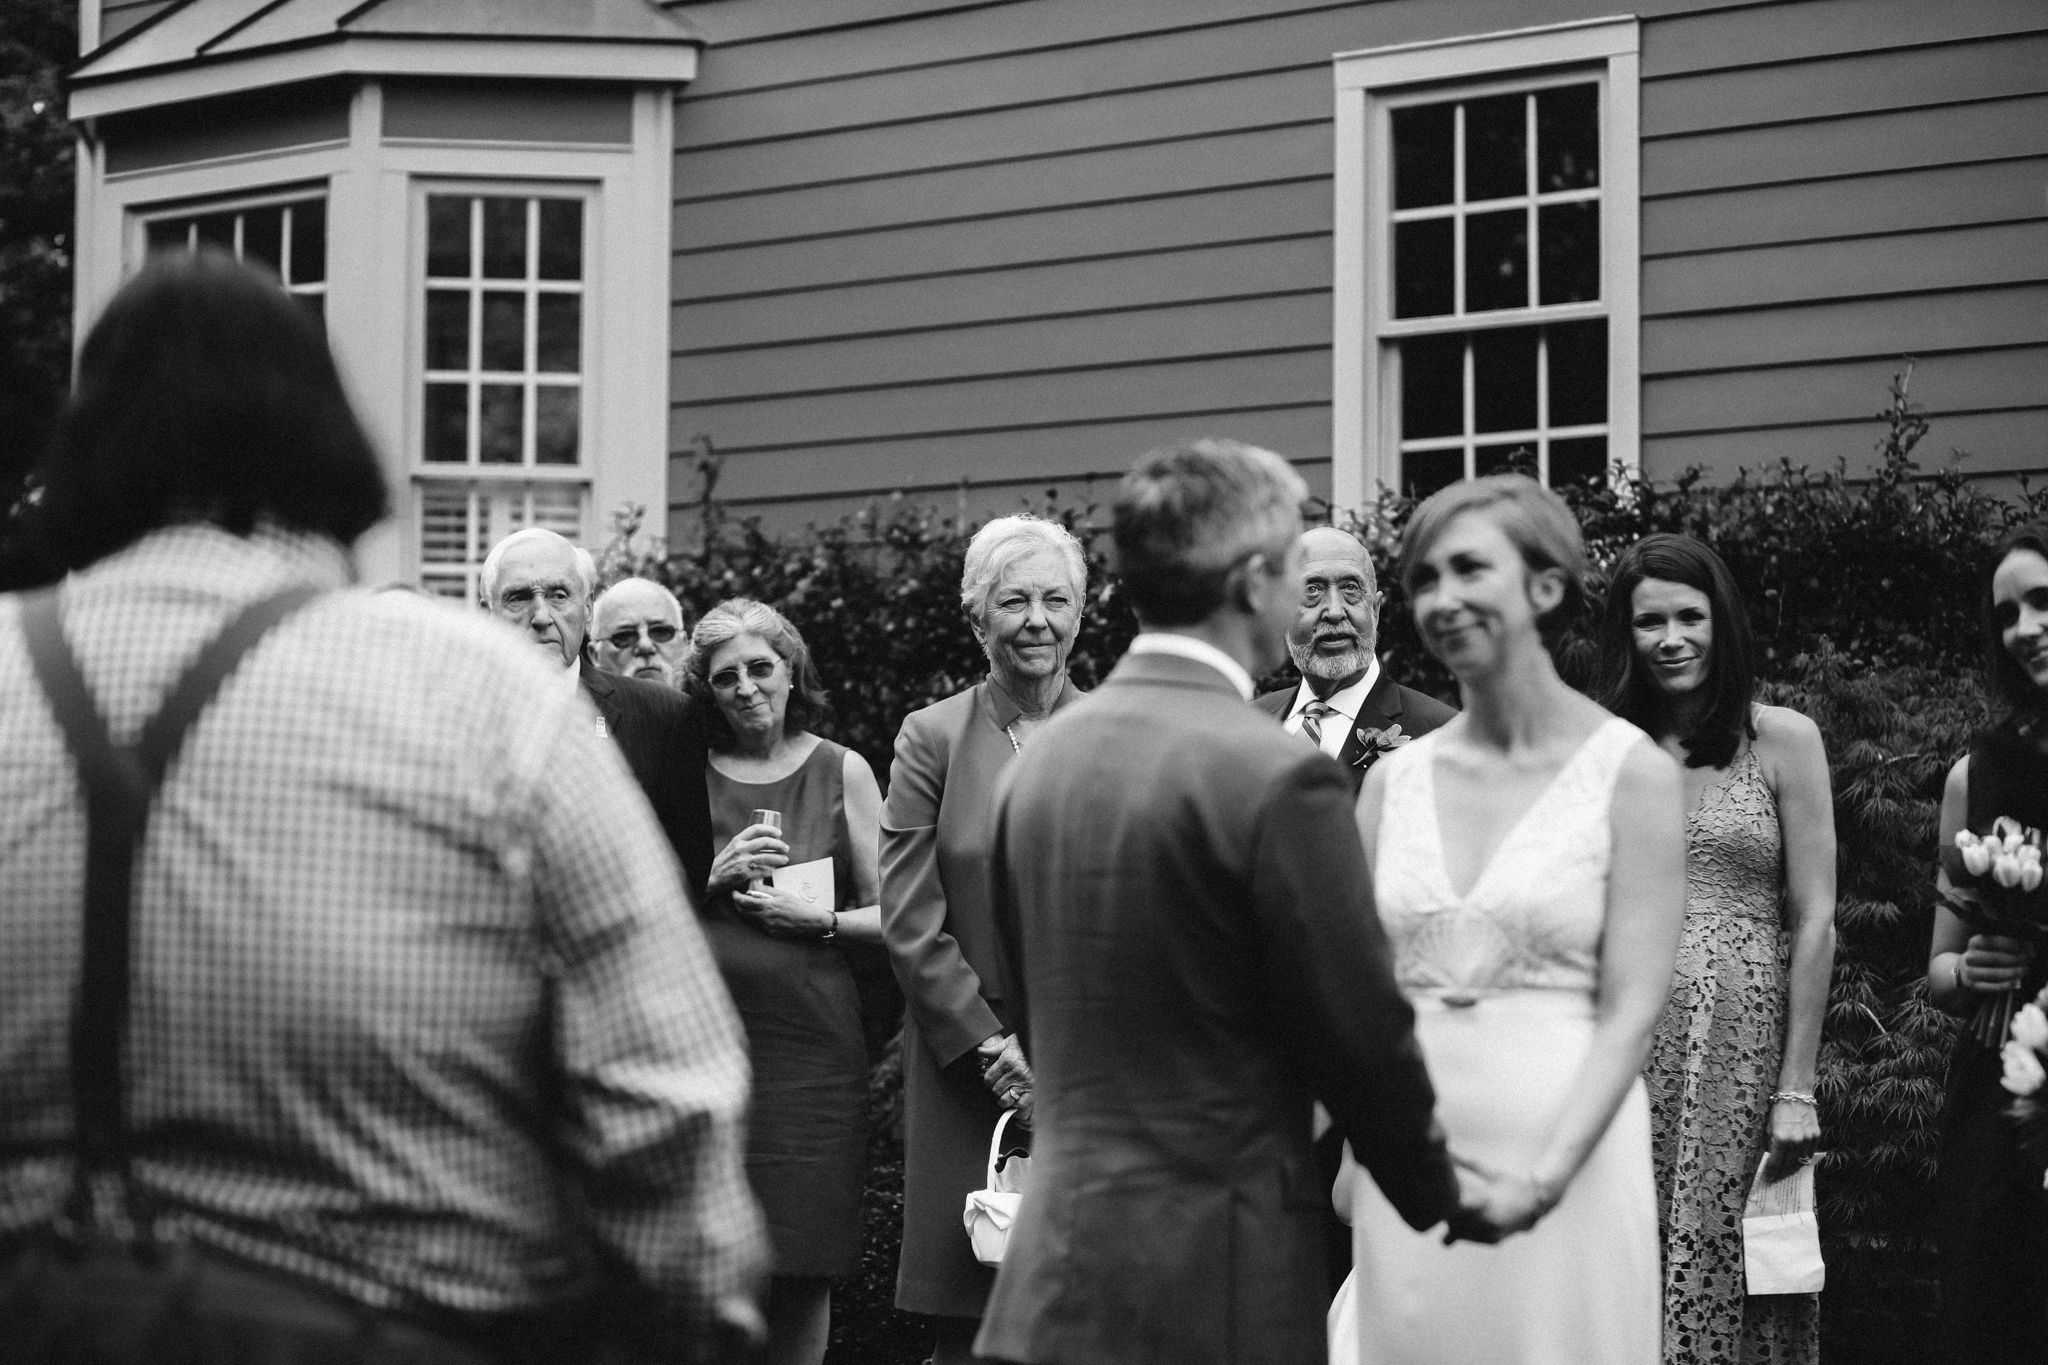 cook_wedding_richmond_virginia_rebecca_burt_photography-40.jpg